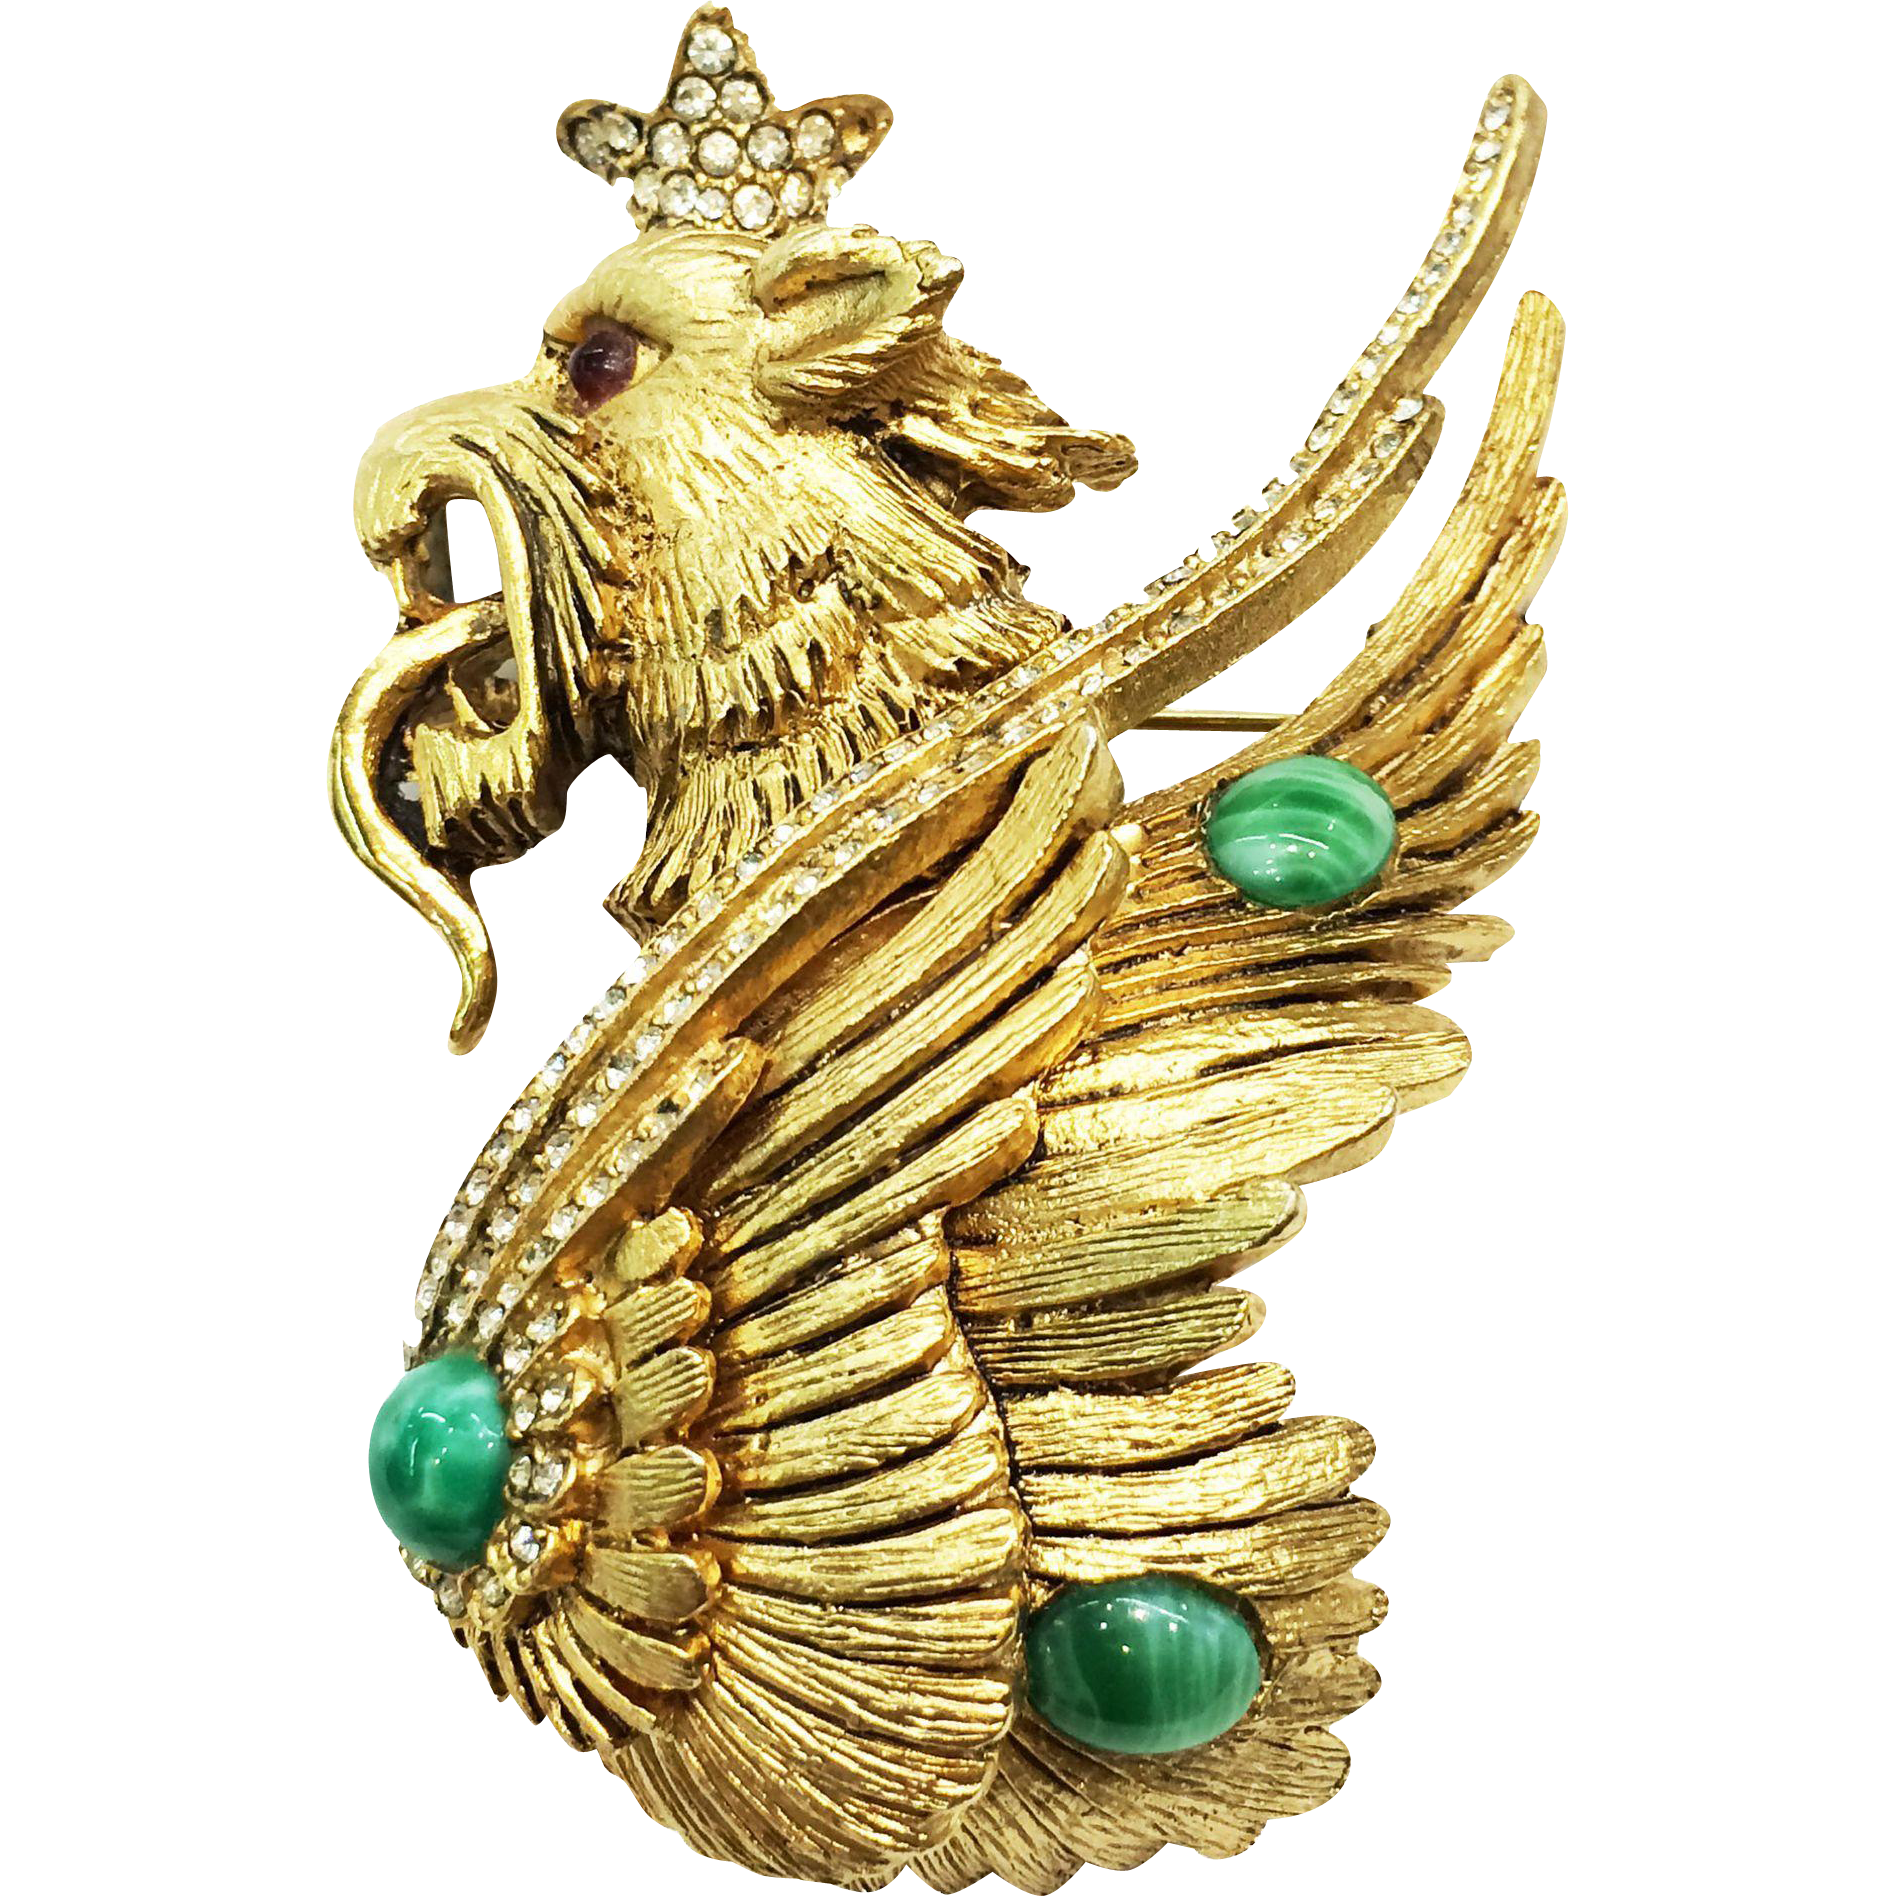 KRAMER Mythical Fire Breathing Winged Lion Figural Gold Tone Brooch with Green Cabochons